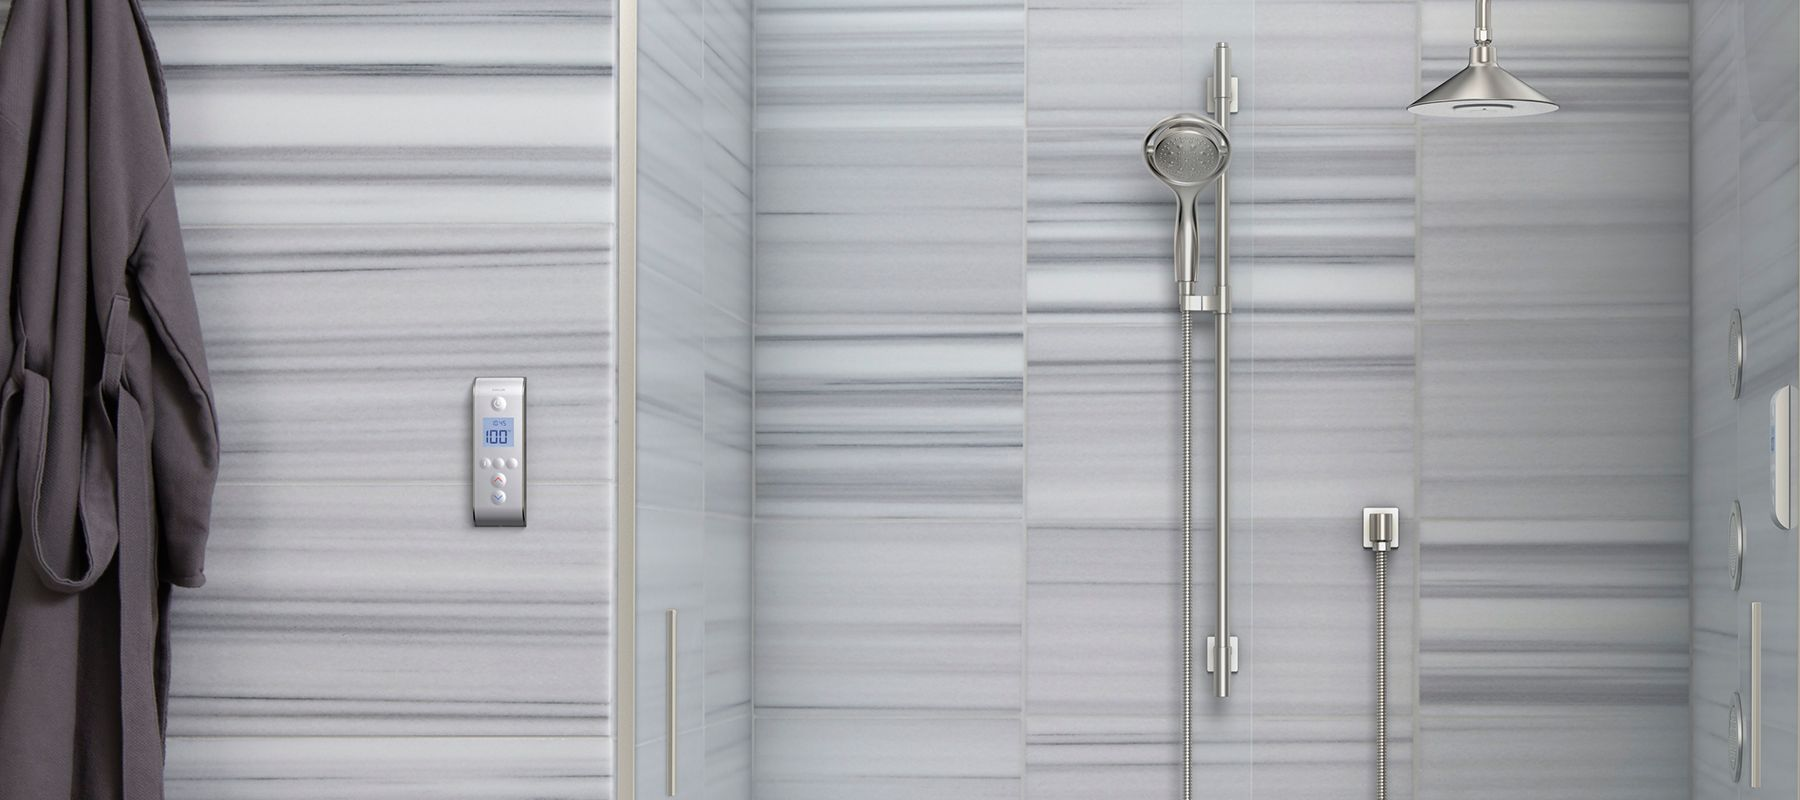 Go Digital In The Shower